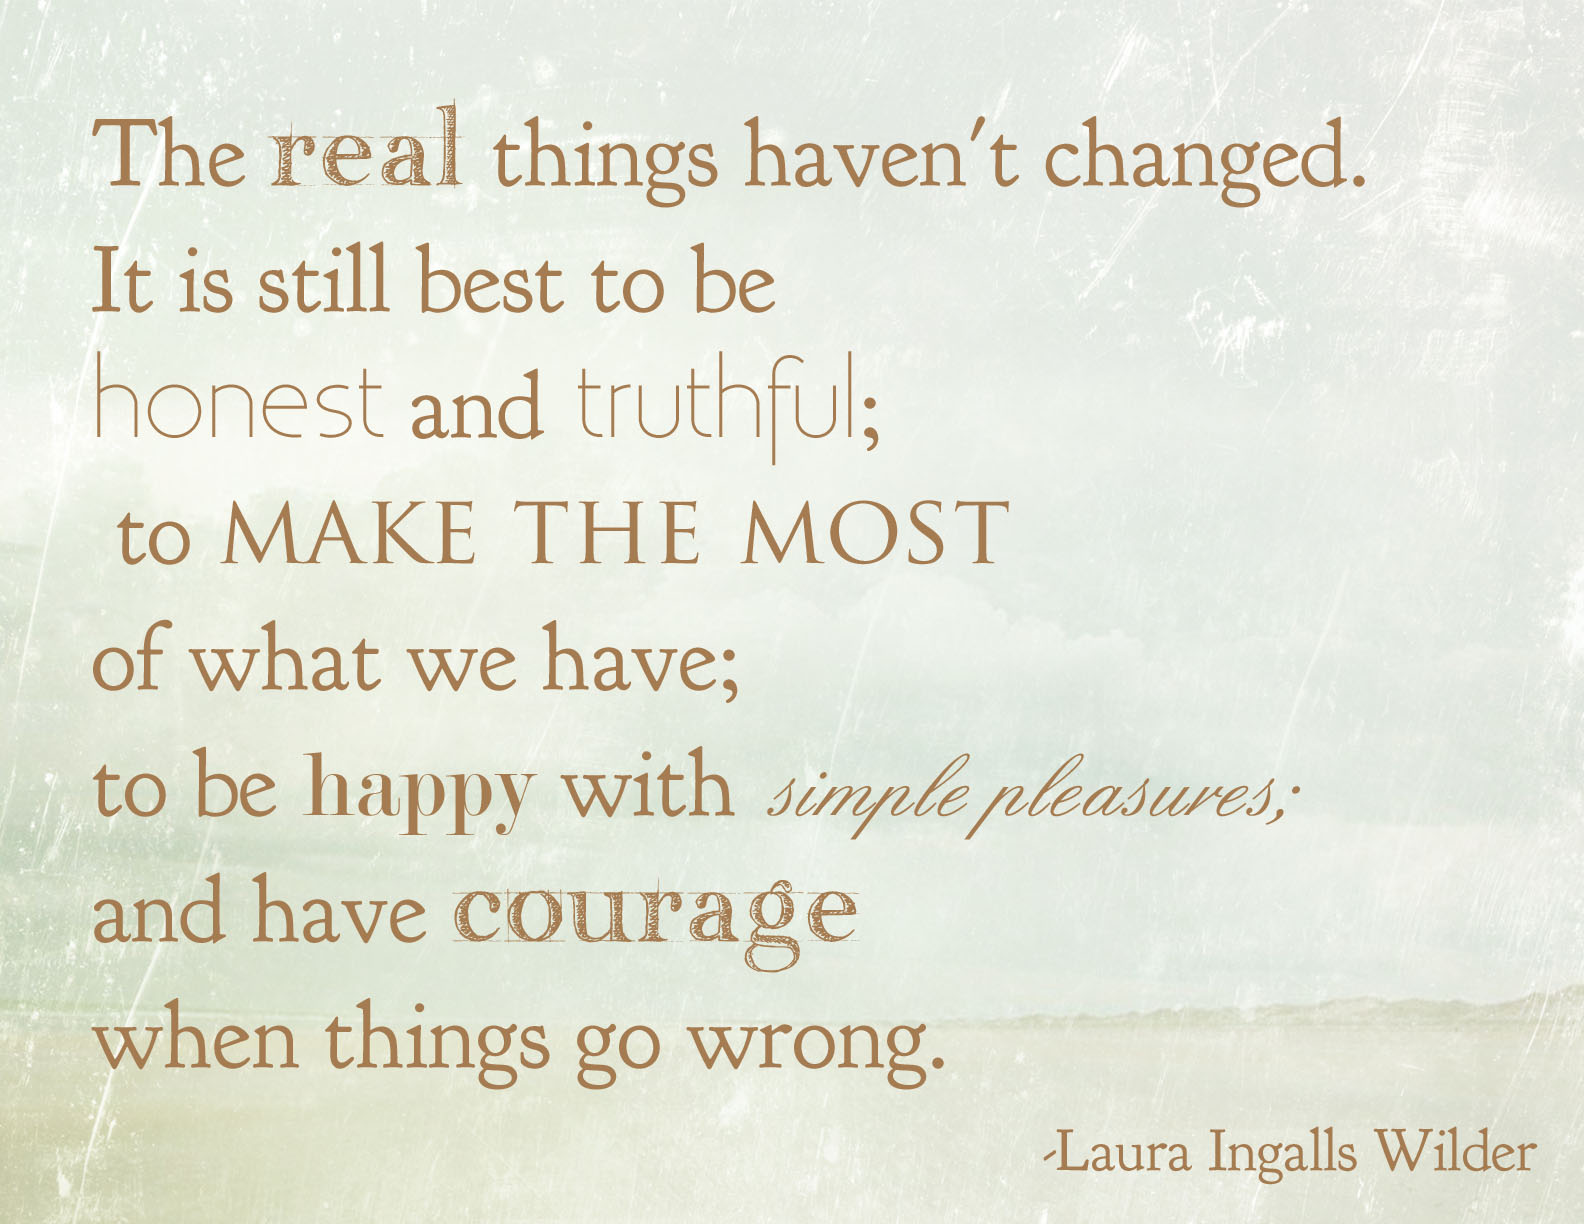 Laura Ingalls Wilder's quote #5